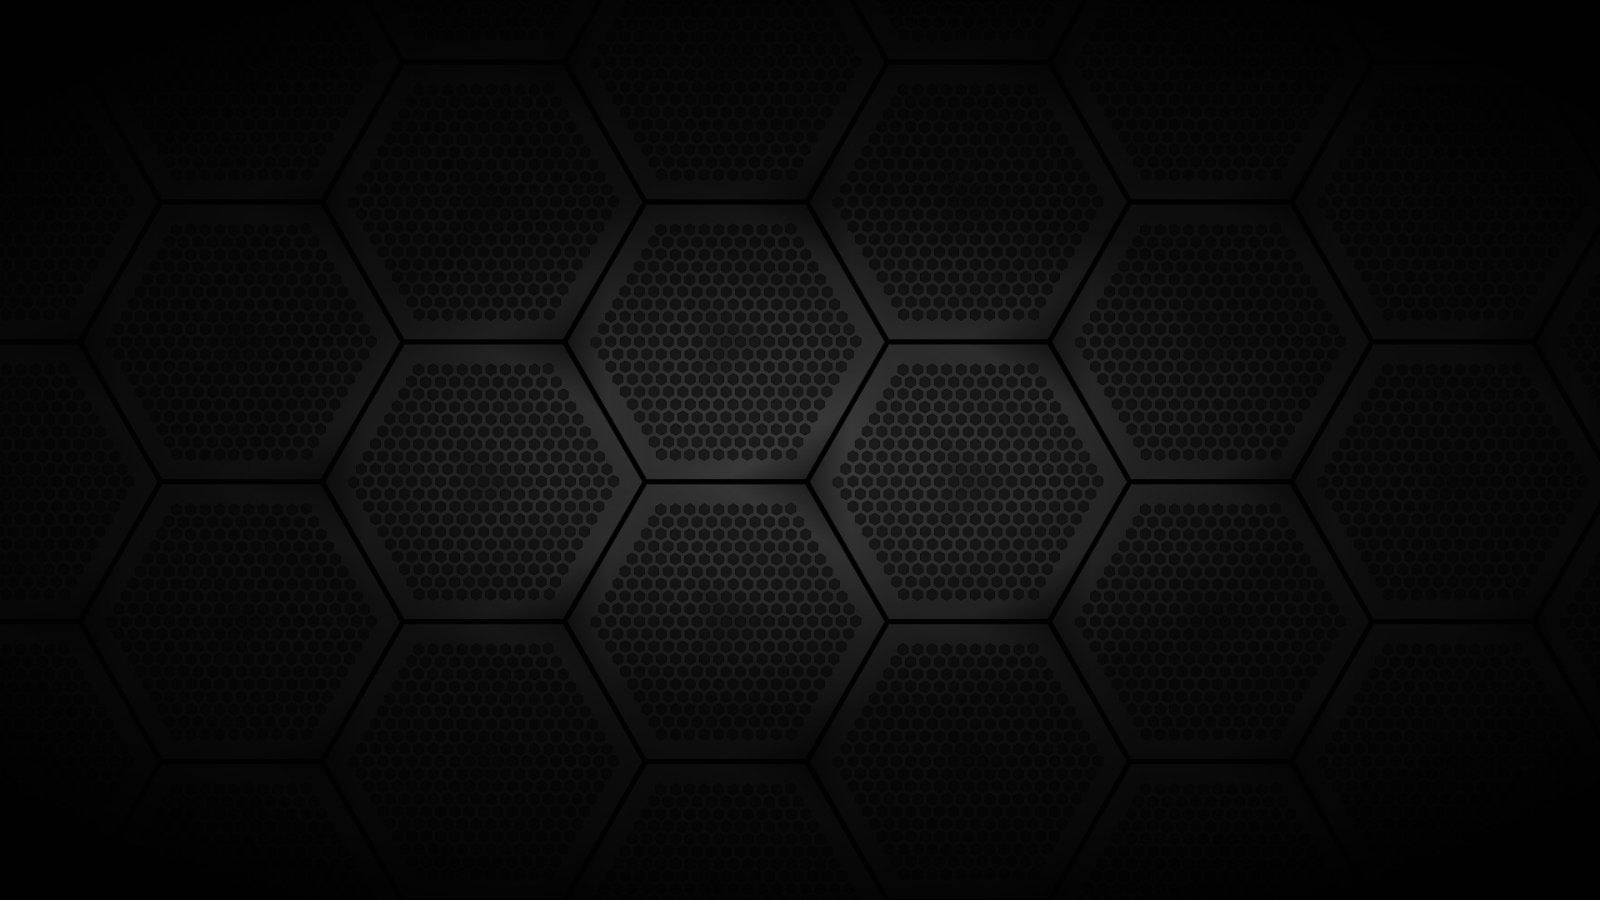 Black abstract for desktop background - Black abstract background ...